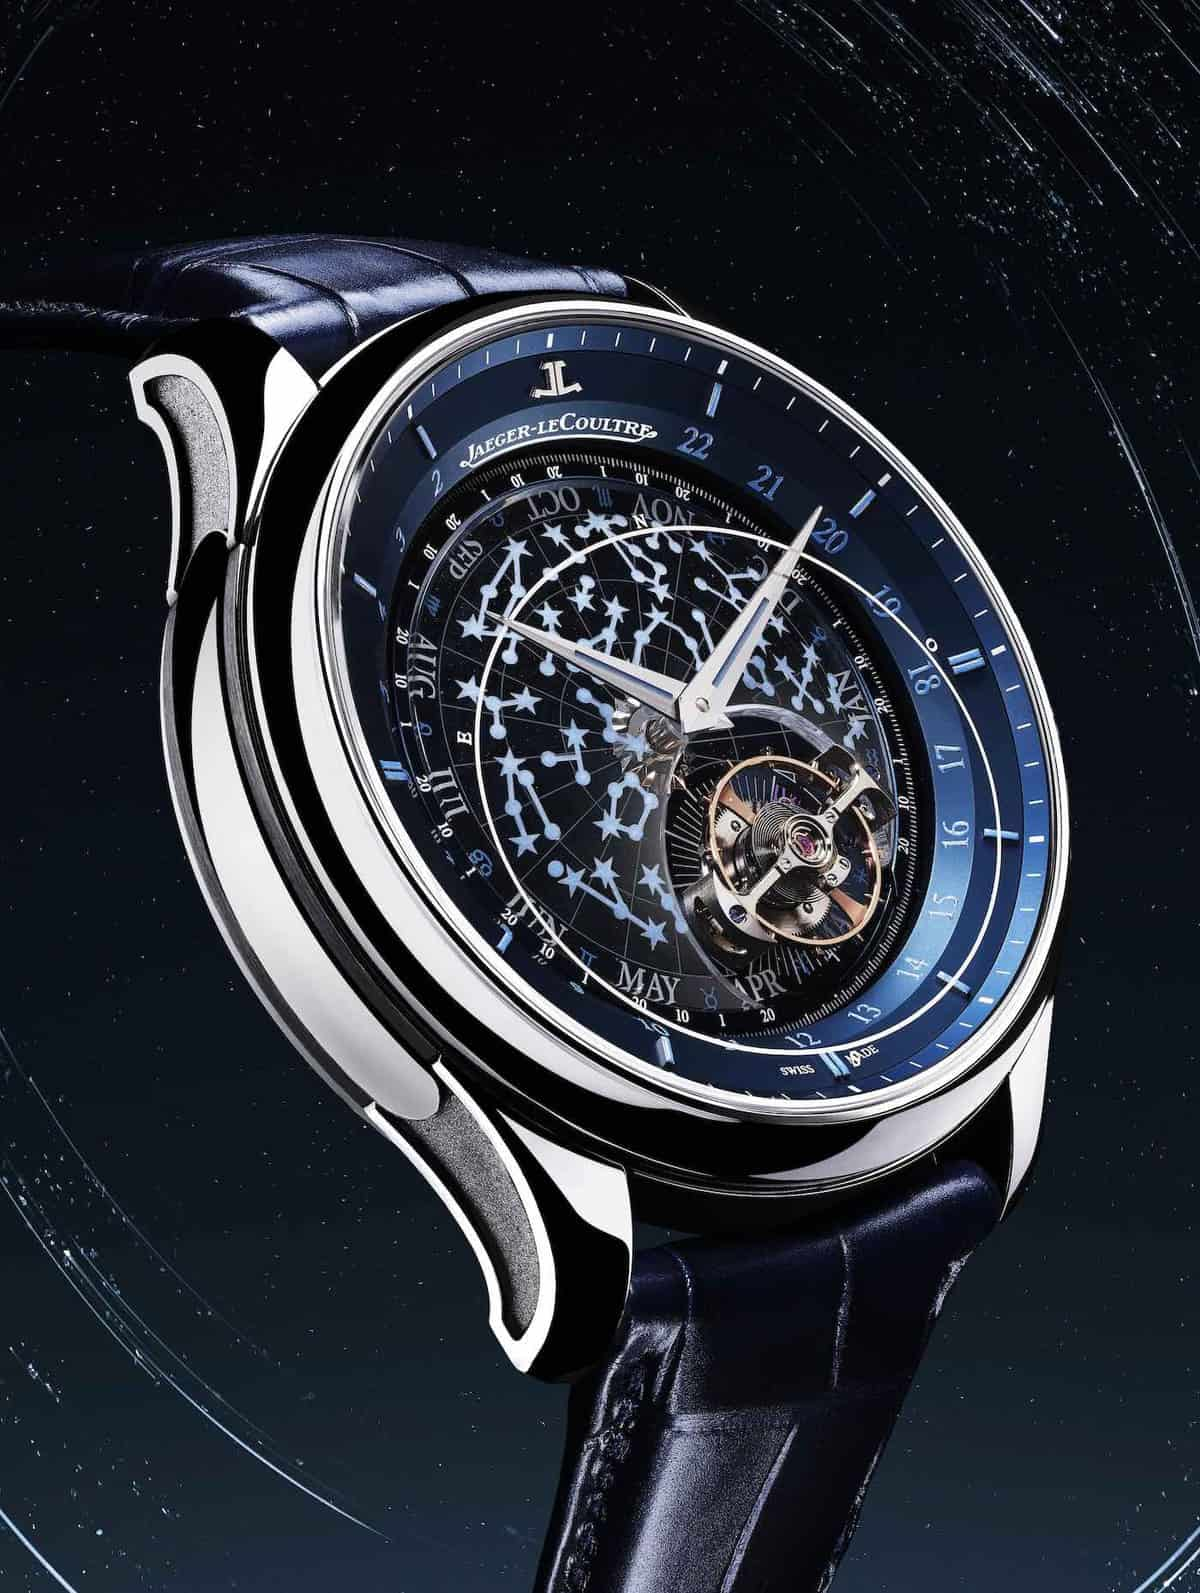 Jaeger LeCoultre Master Grande Tradition Tourbillon Céleste Watch 1